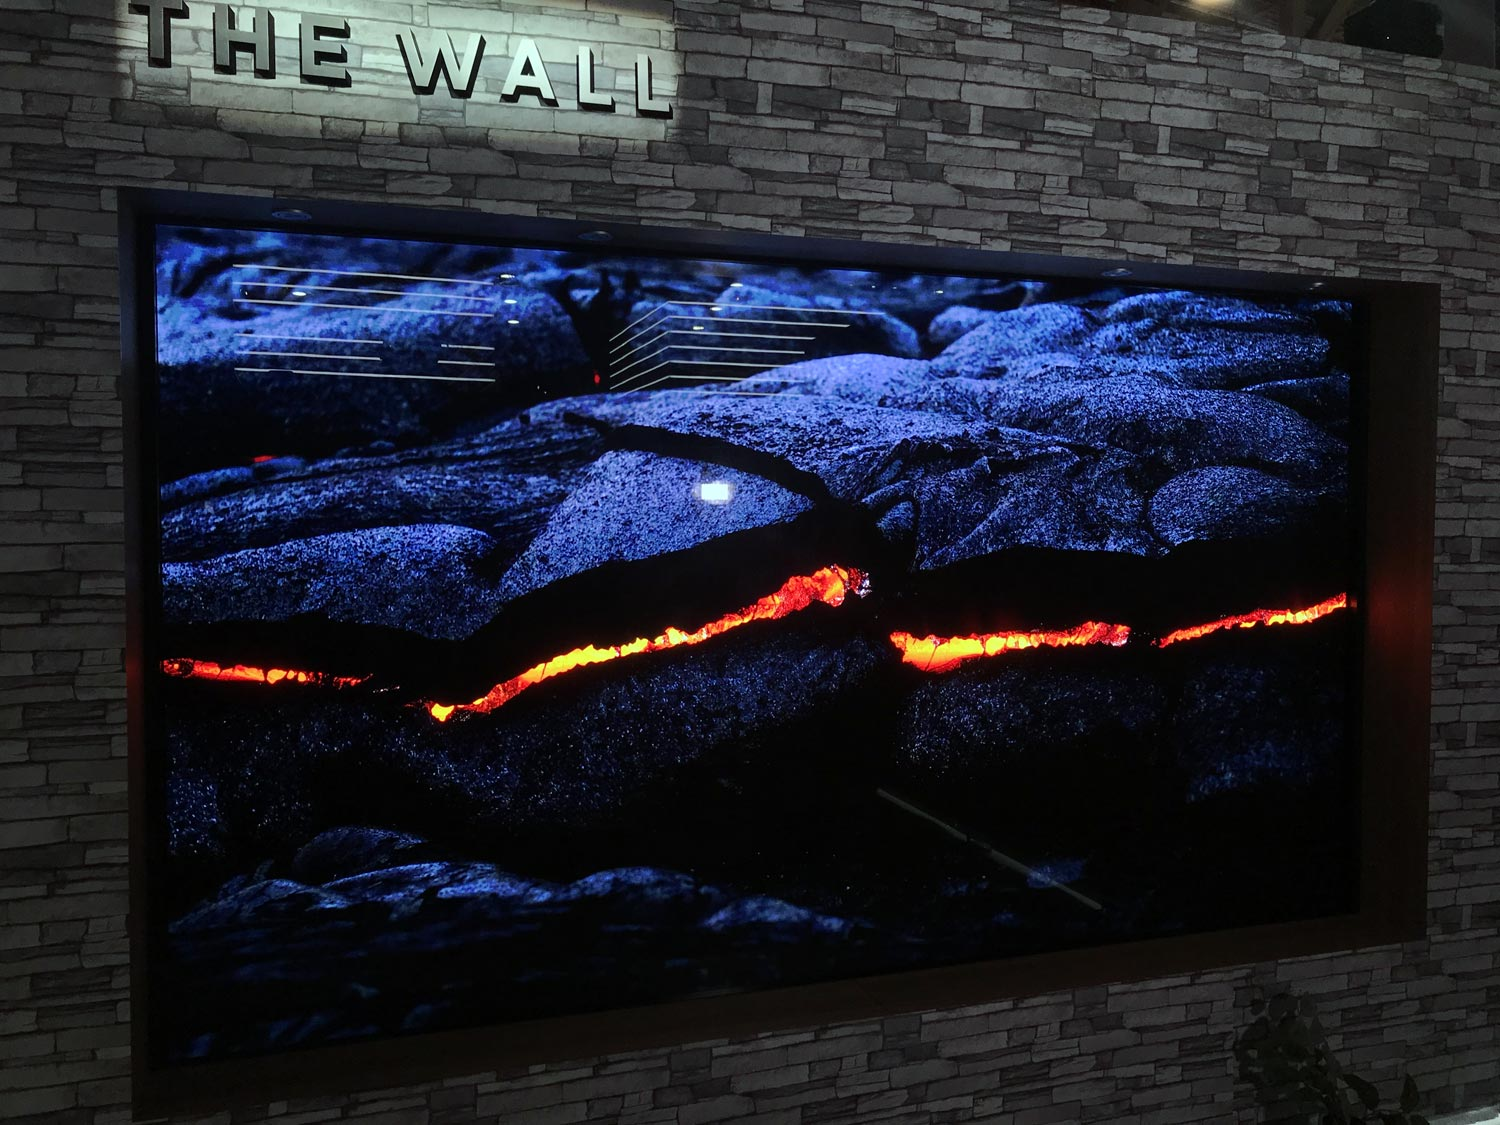 First look: Samsung The Wall (146